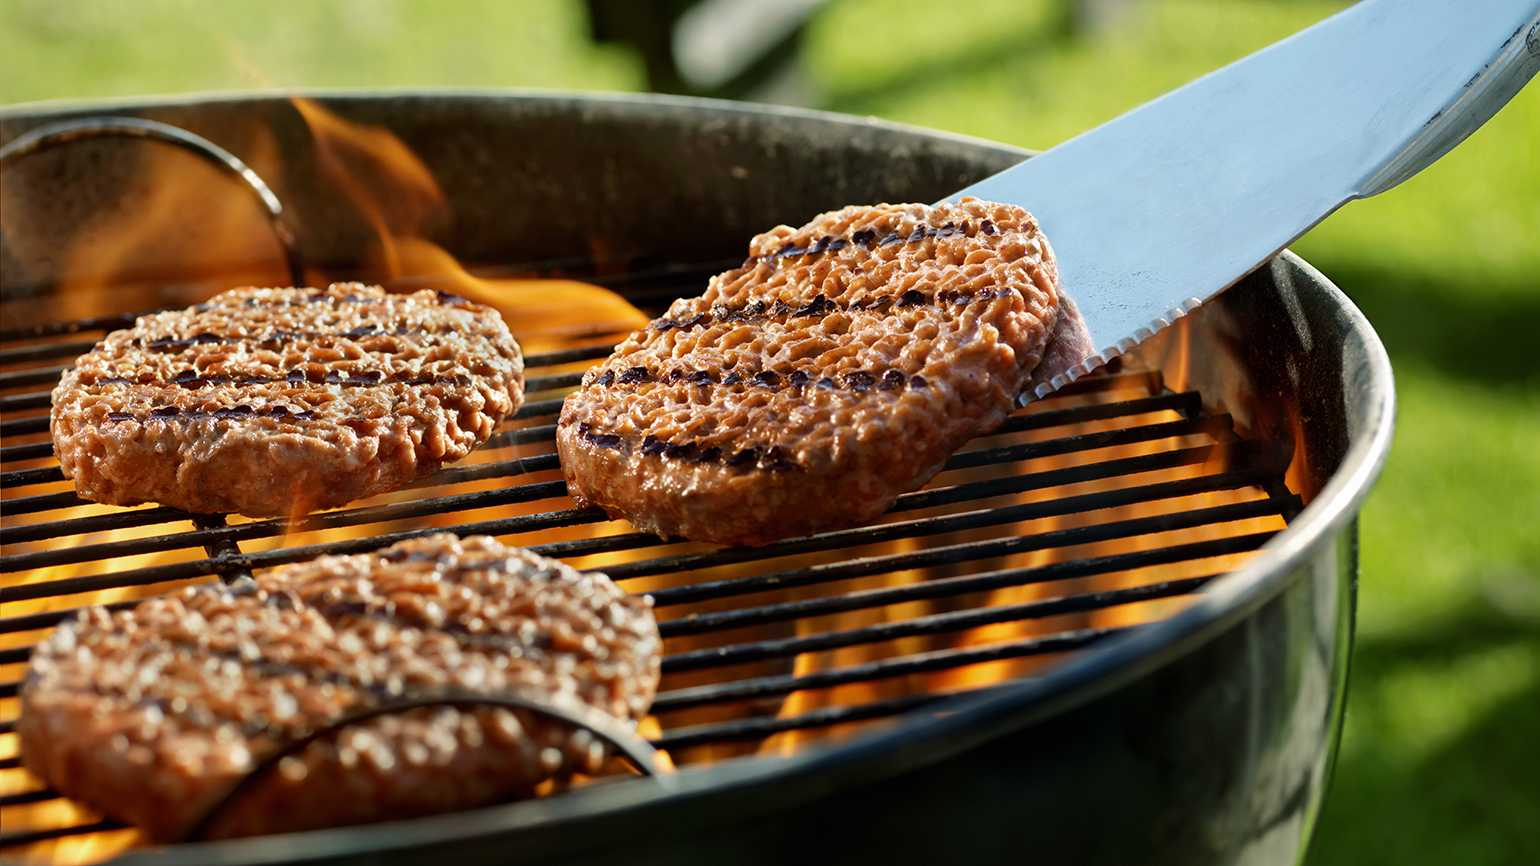 Hamburgers on an outdoor grill